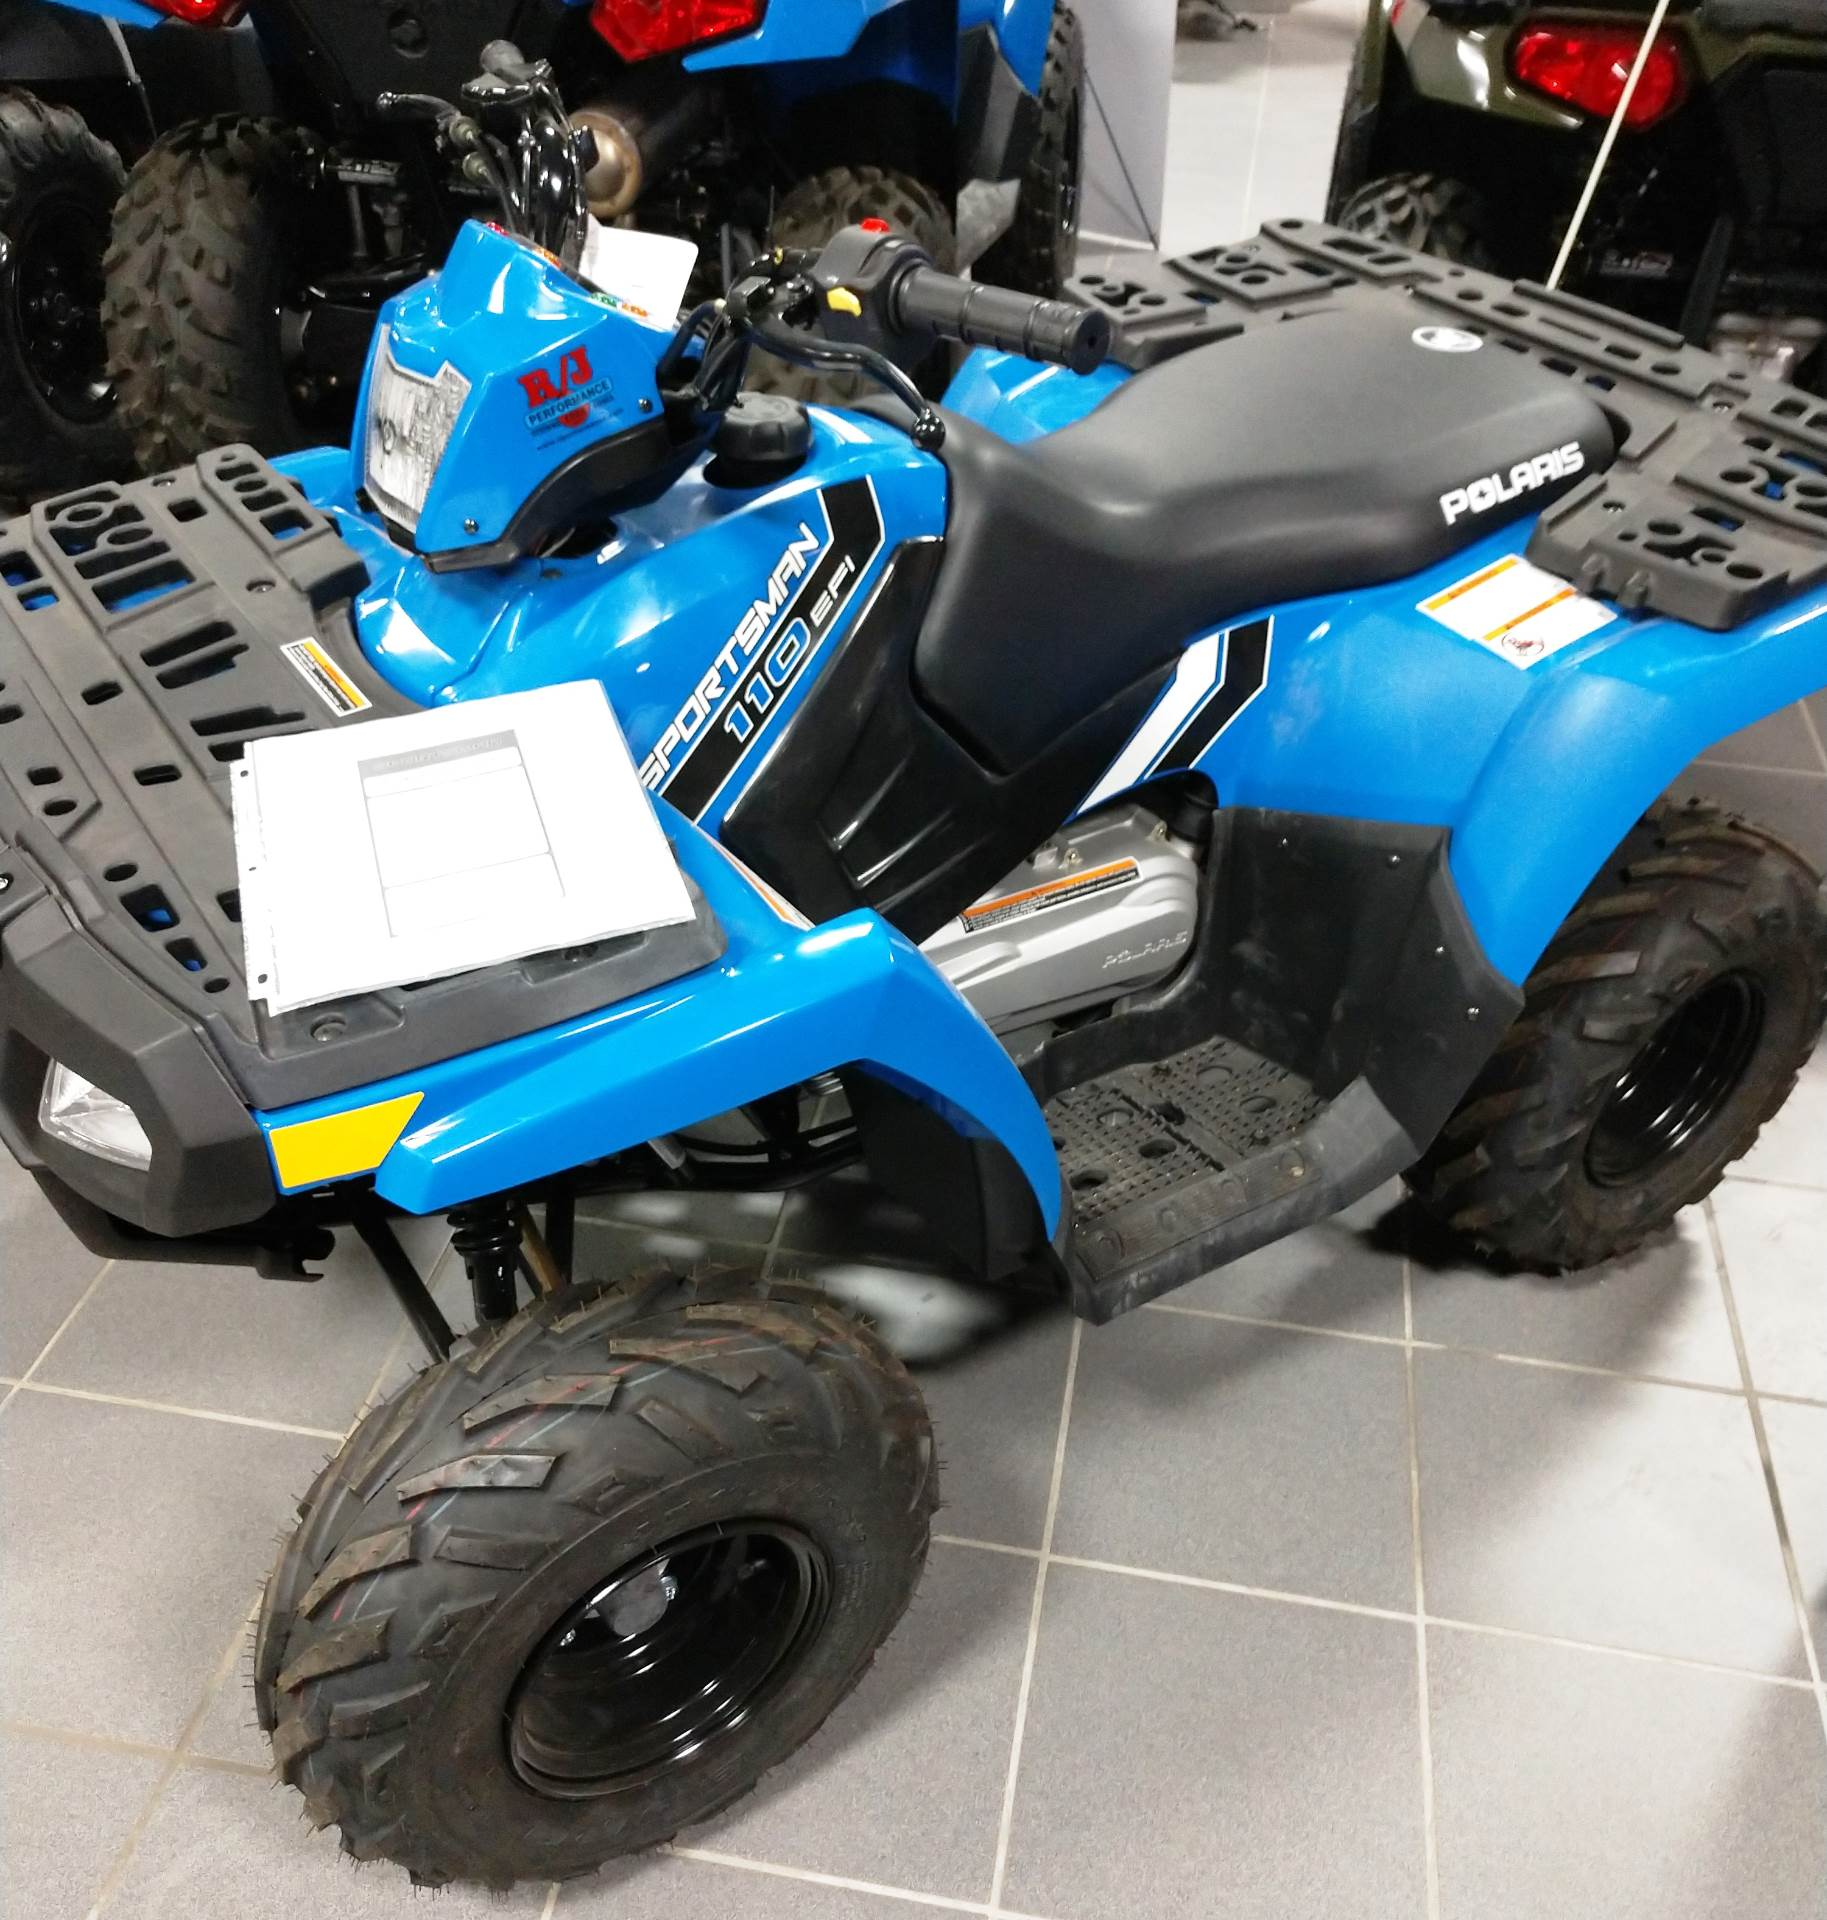 2019 Polaris Sportsman 110 EFI in Ottumwa, Iowa - Photo 2